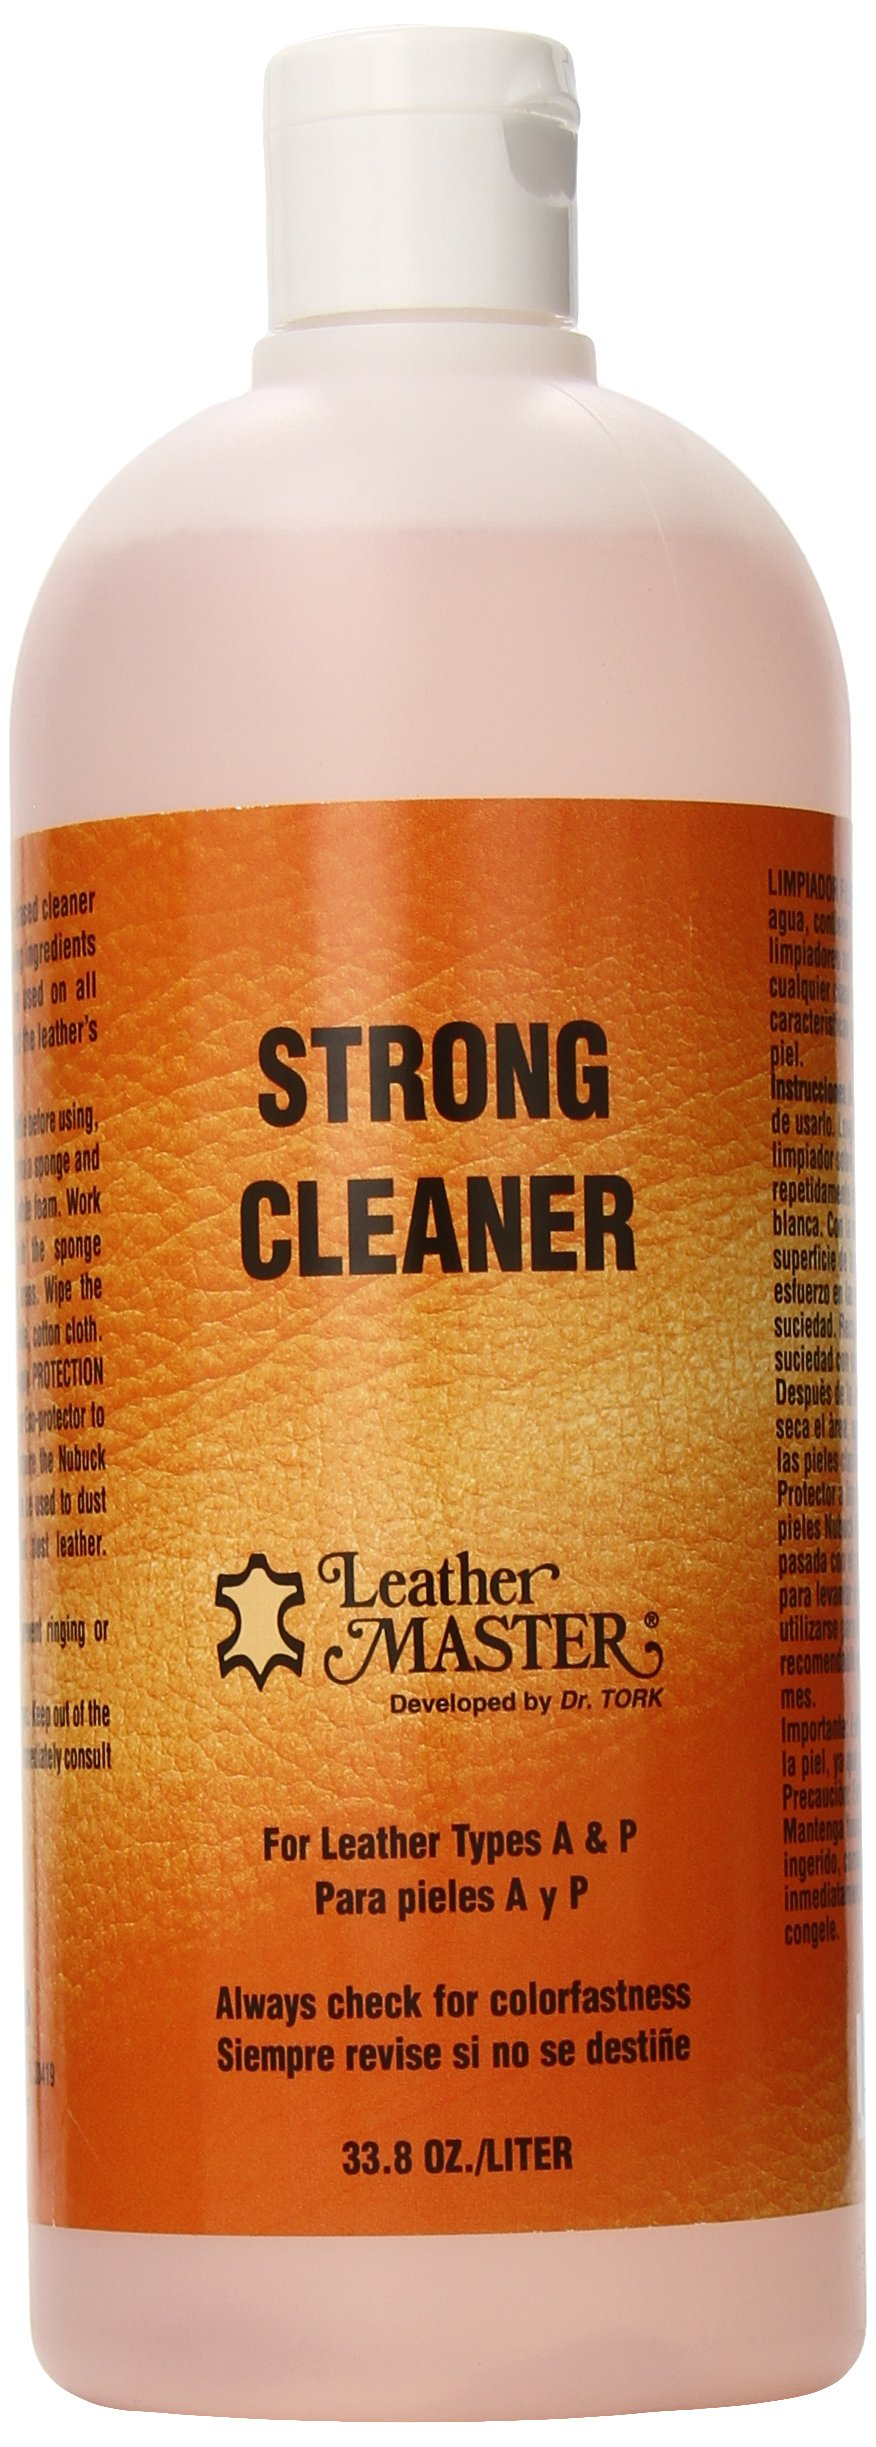 Leather Masters 1 Liter Strong Leather Cleaner